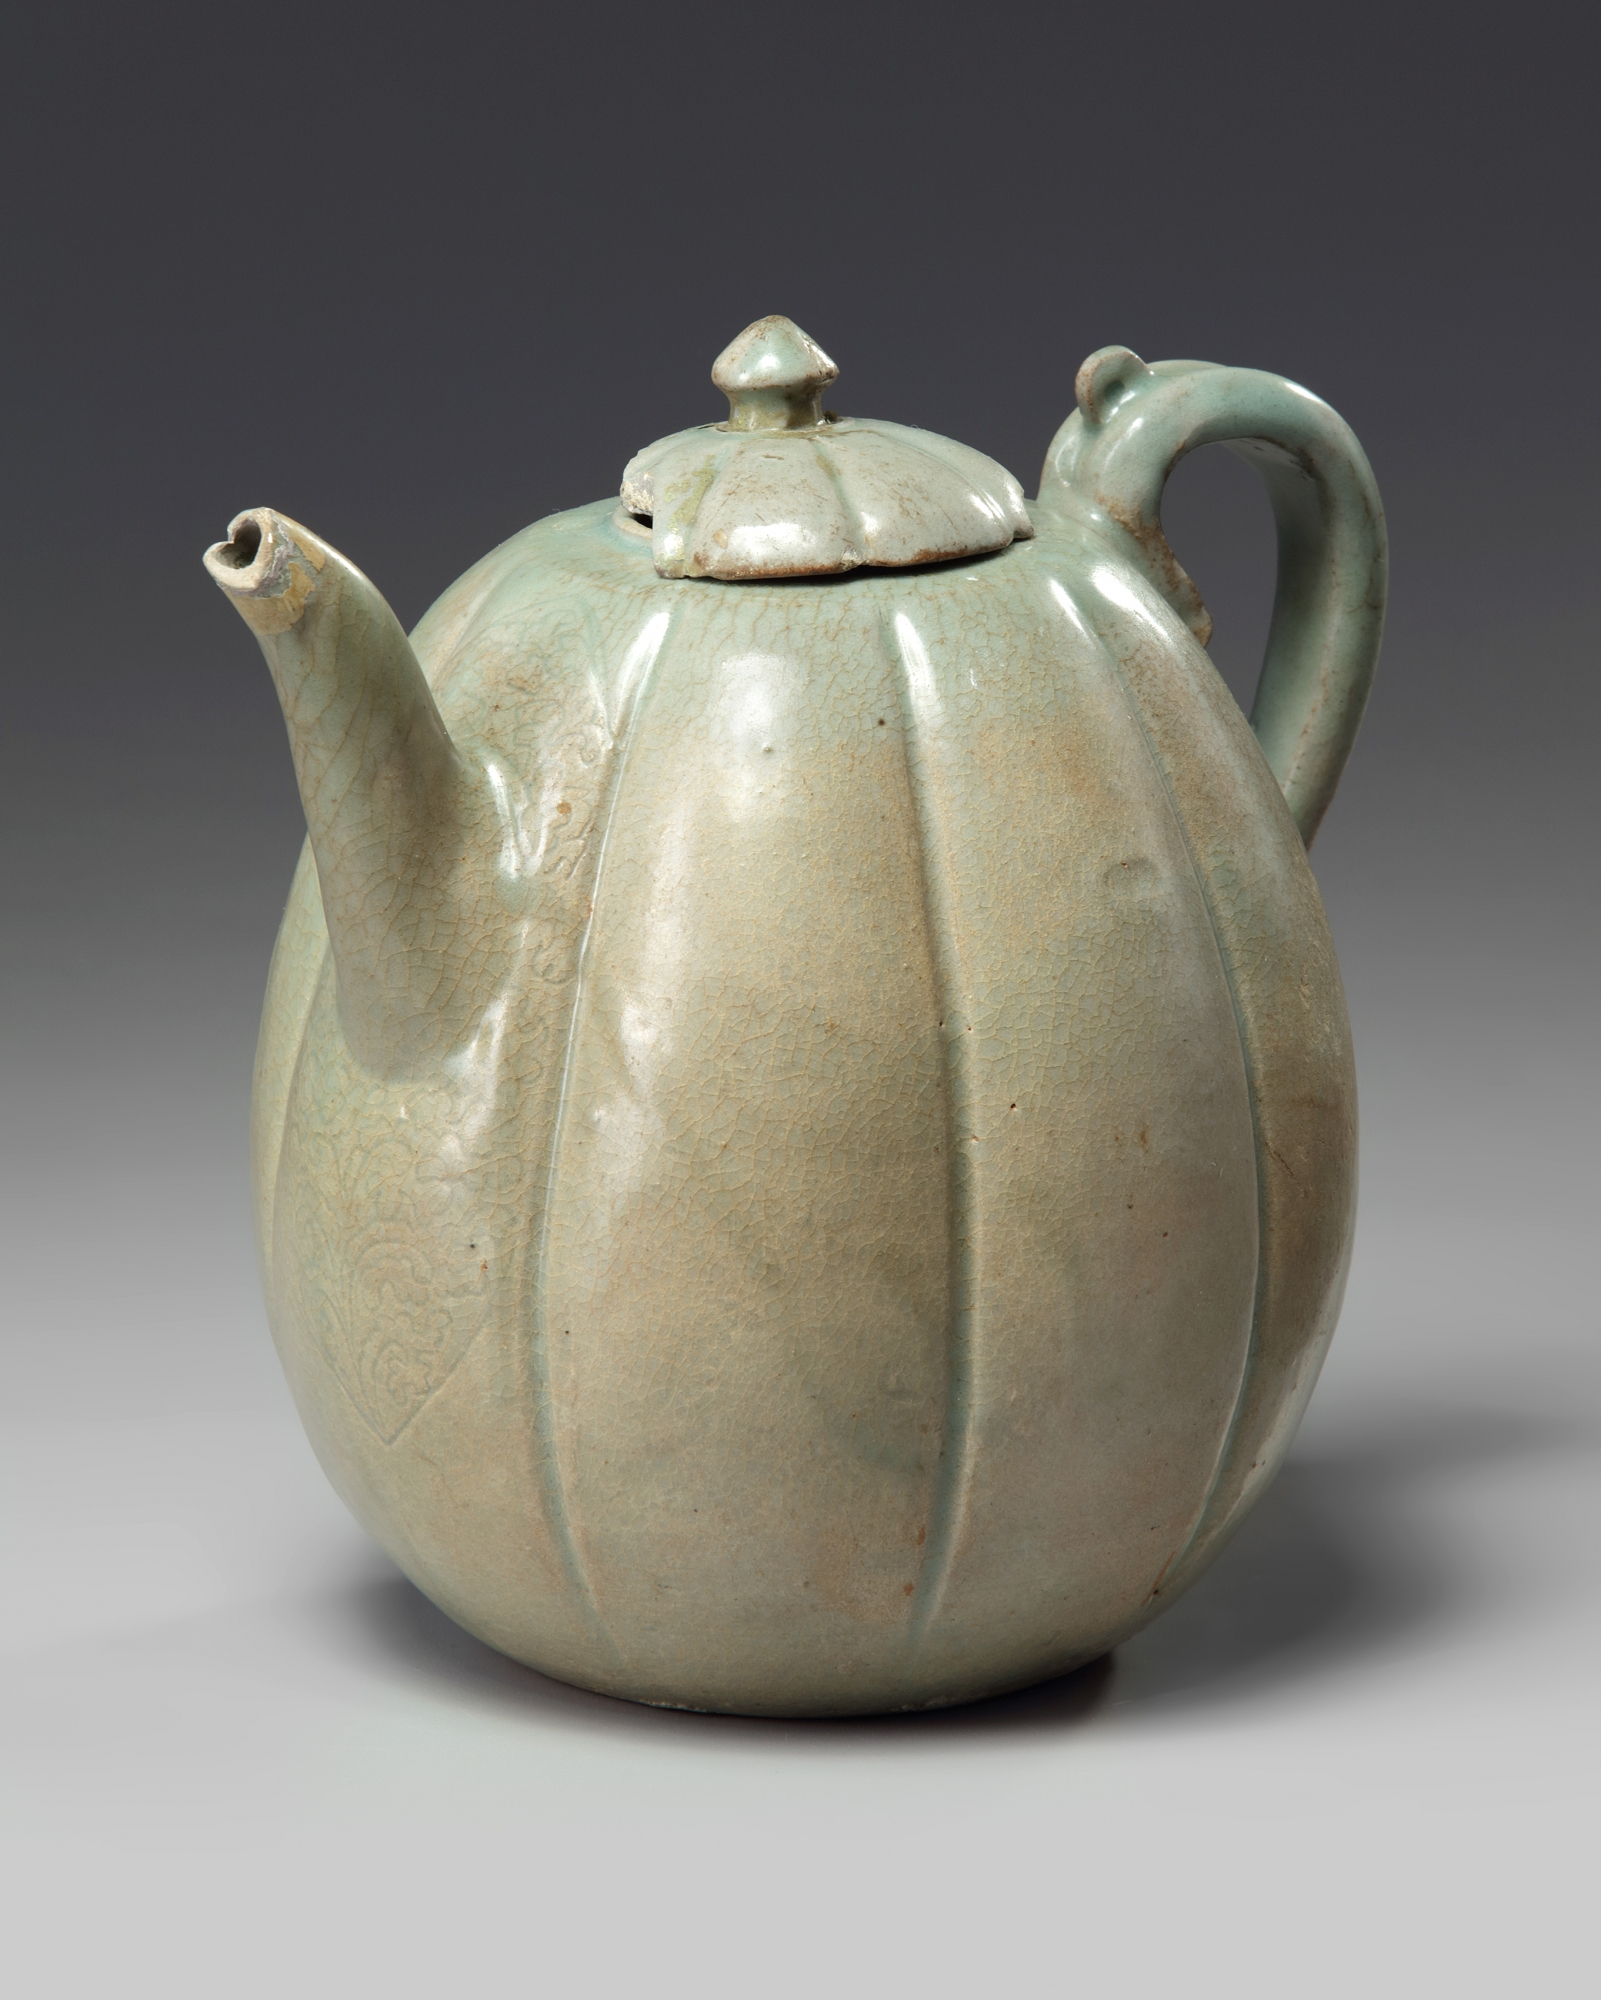 Lot 49 - A Korean celadon glazed lobed teapot and cover